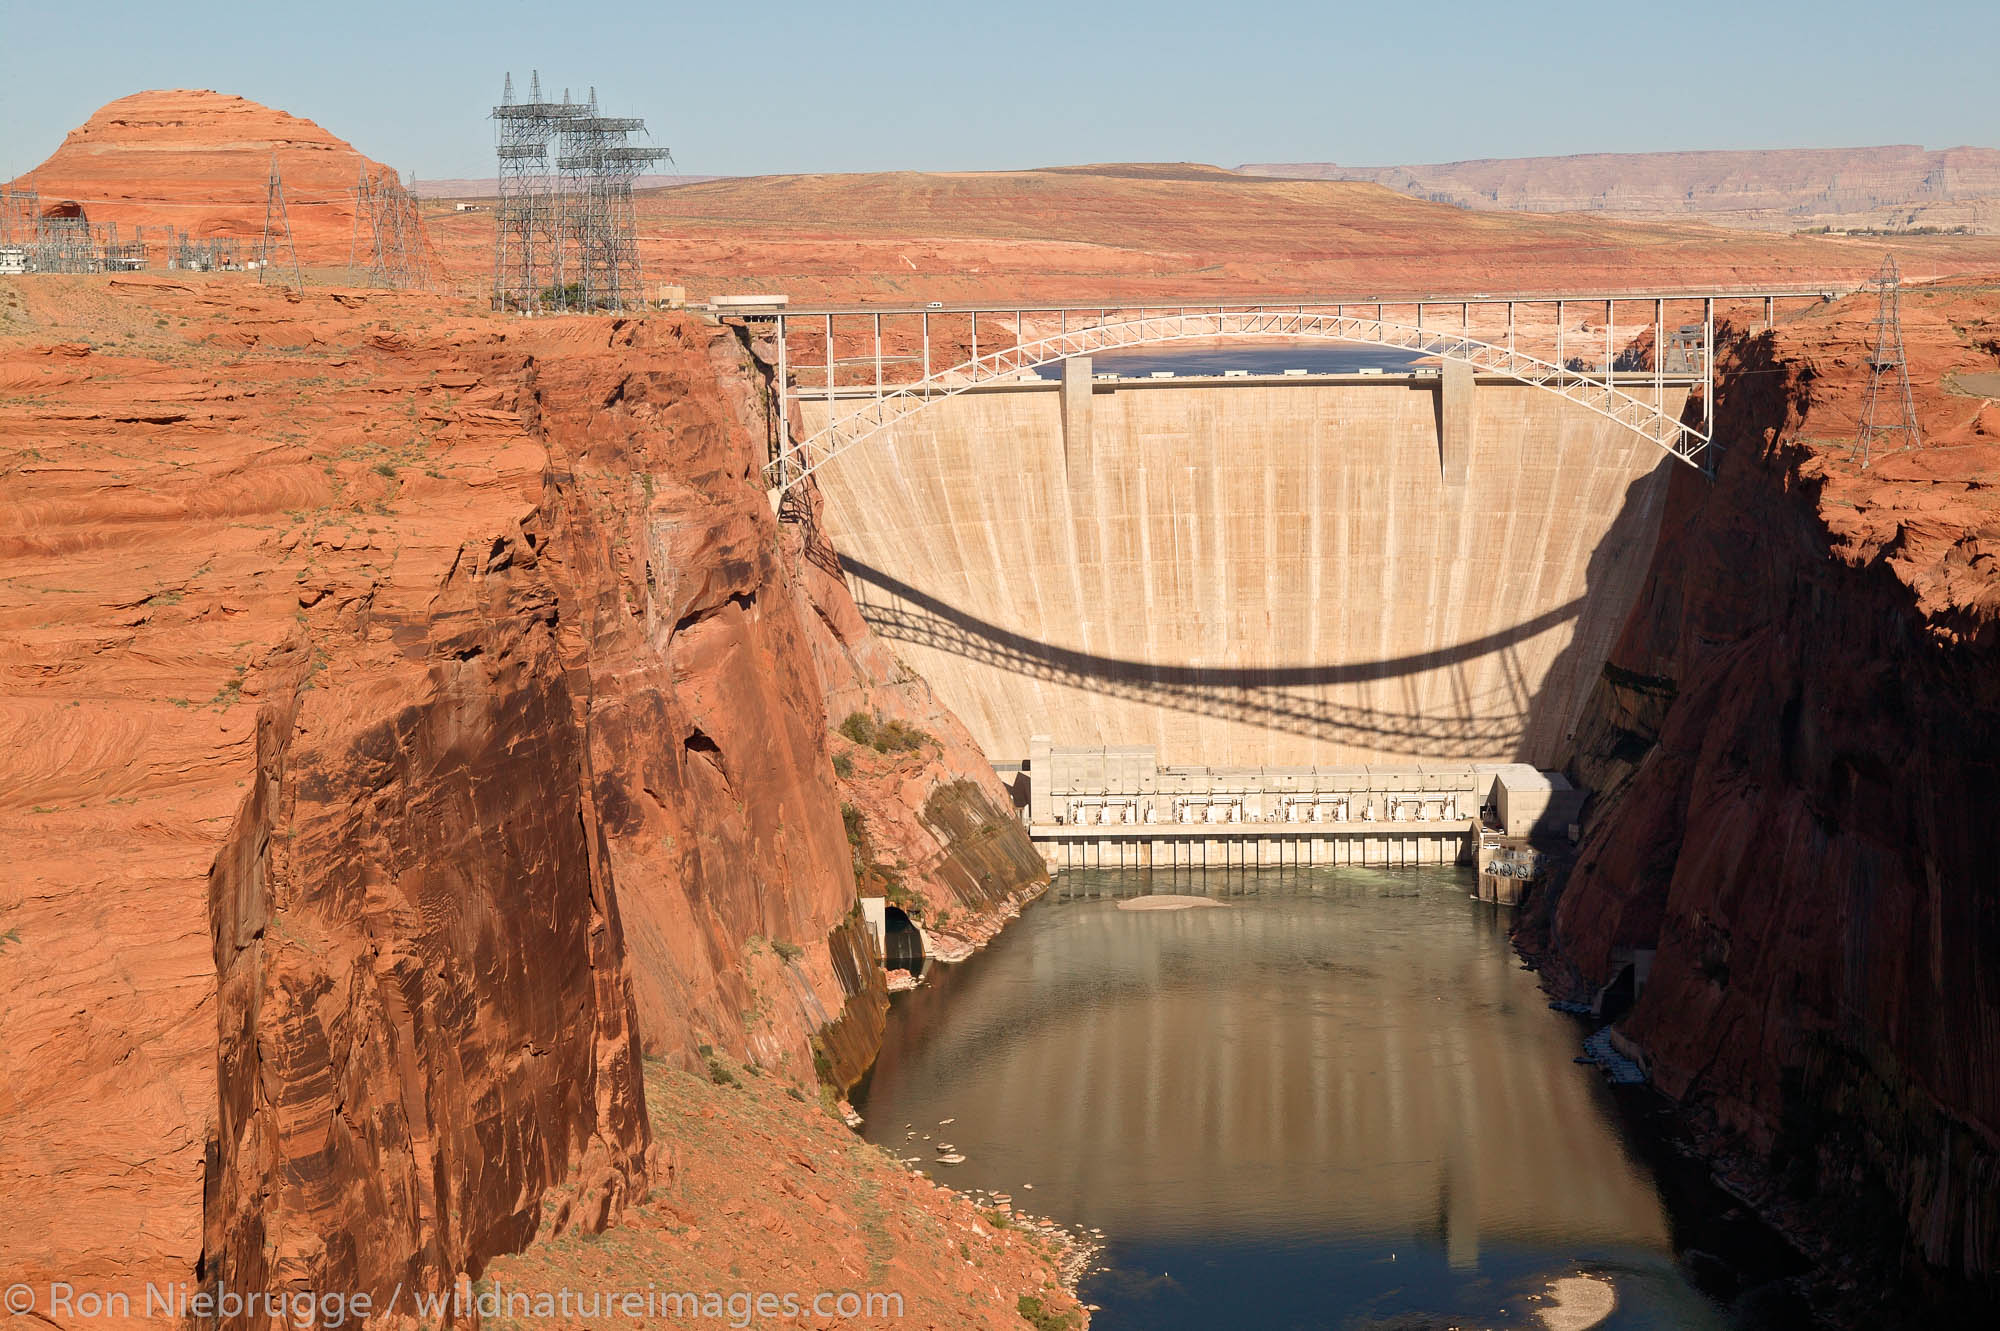 The Glen Canyon Dam on the Colorado River forms Lake Powell, Page, Arizona.